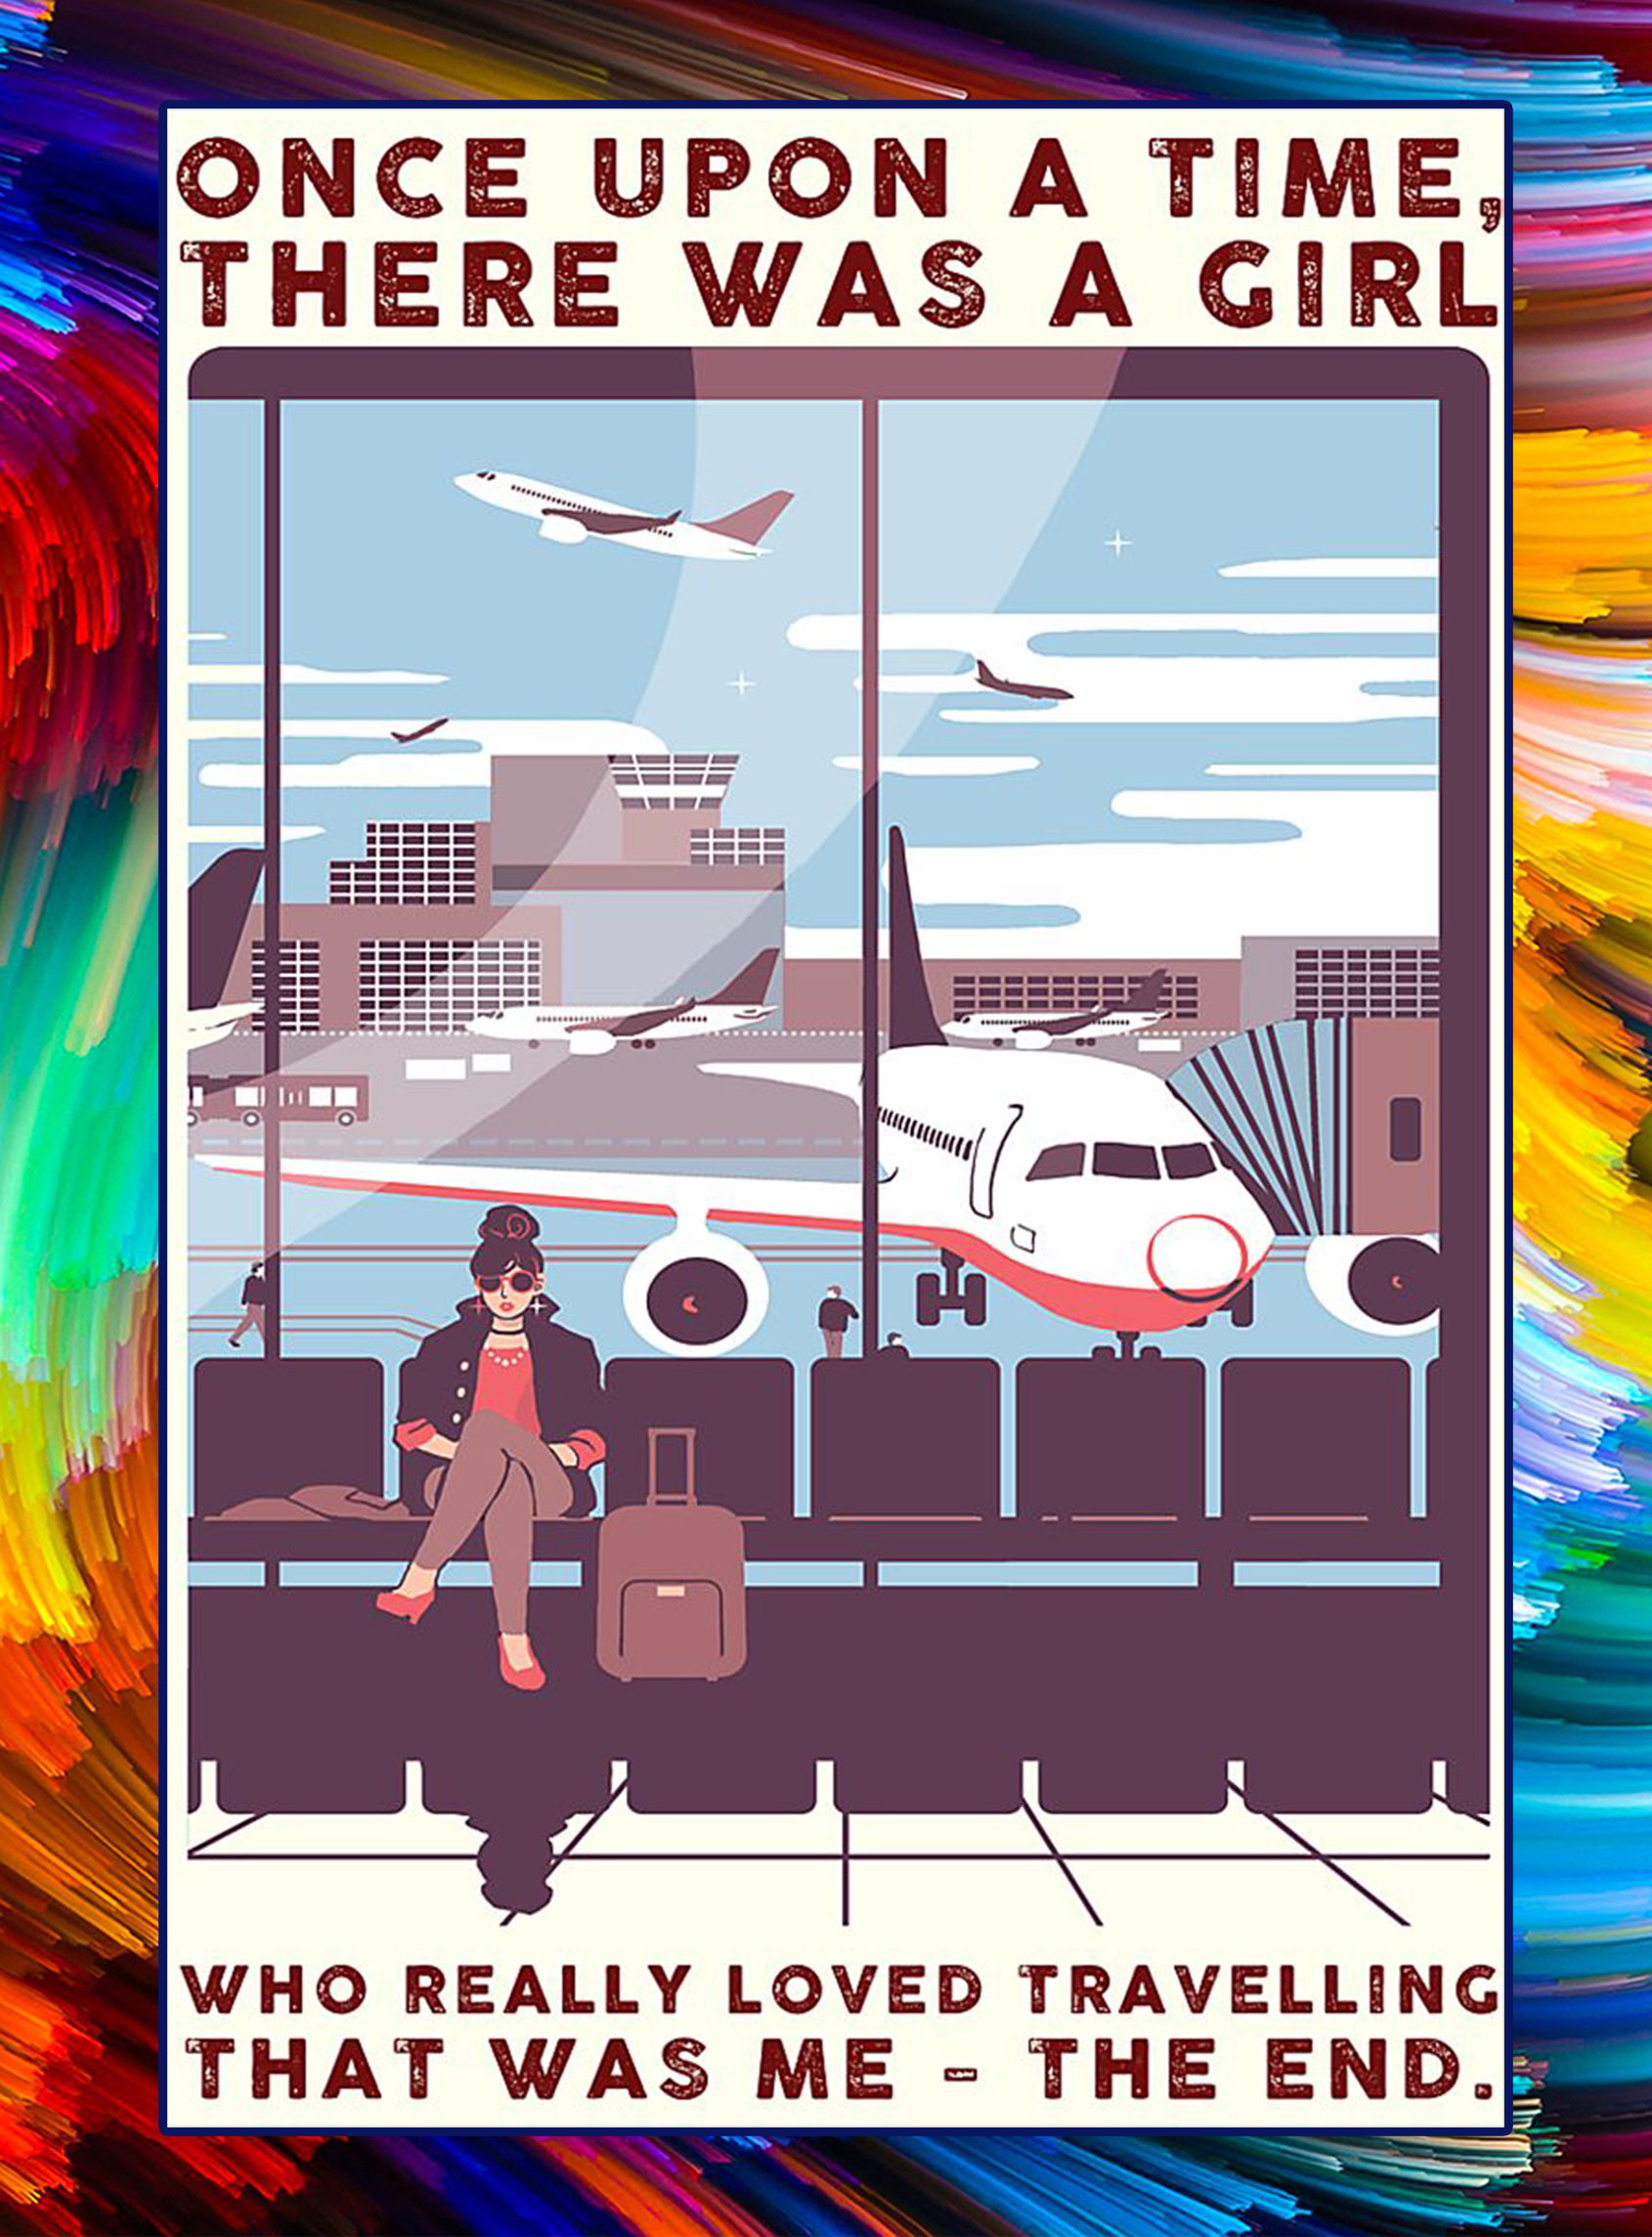 Once upon a time there was a girl who really loved travelling poster - A1